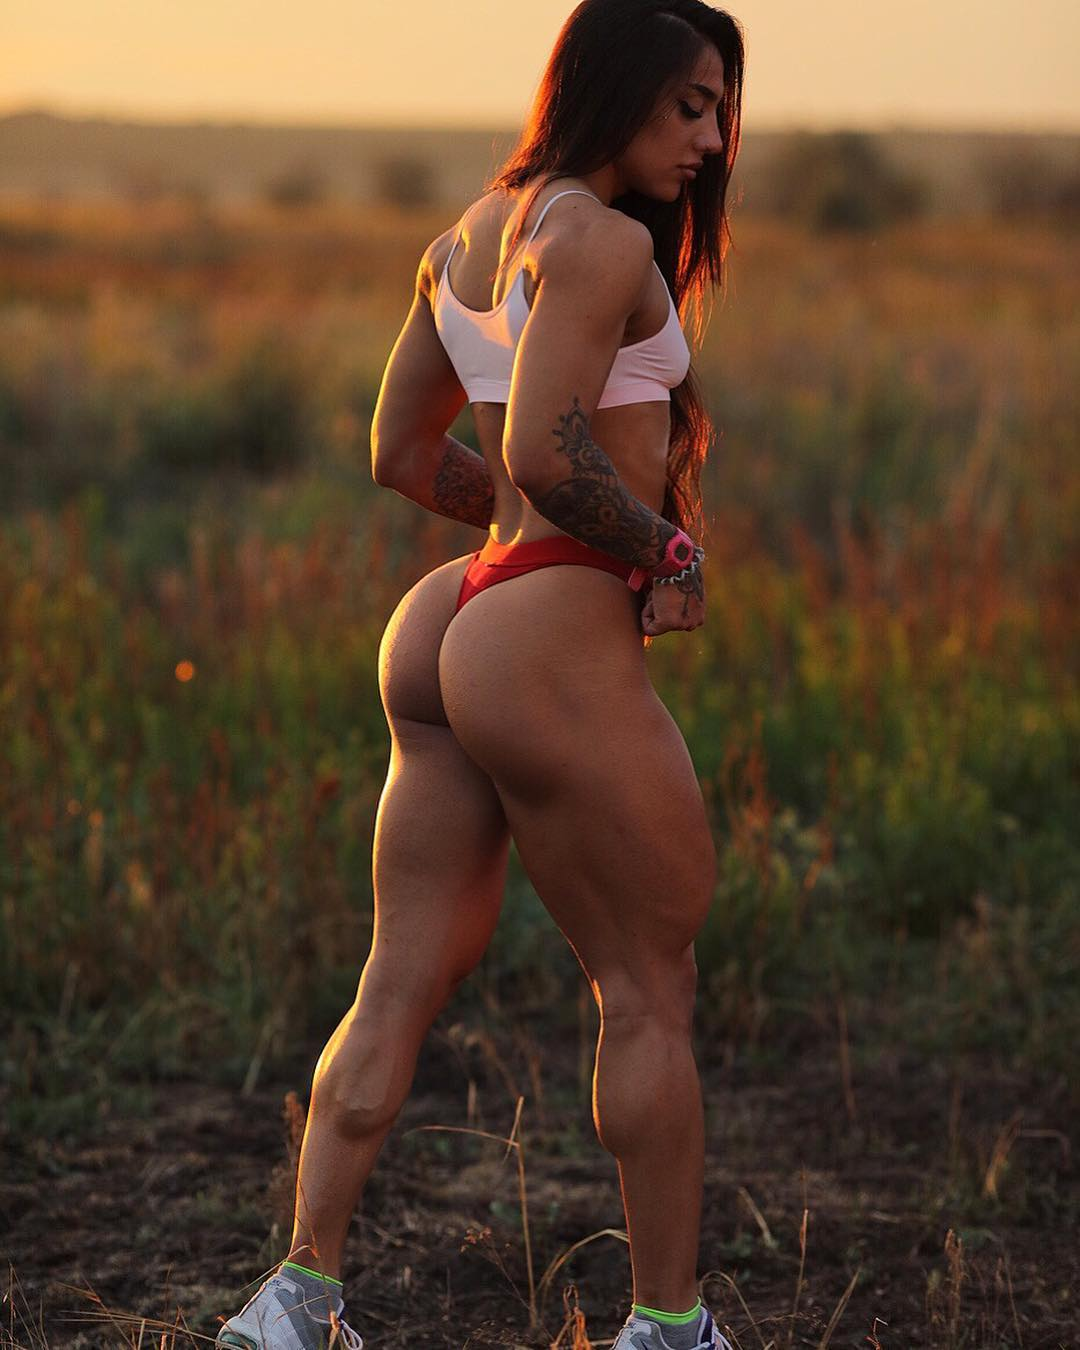 Bakhar Nabieva Photos naked (68 pics)